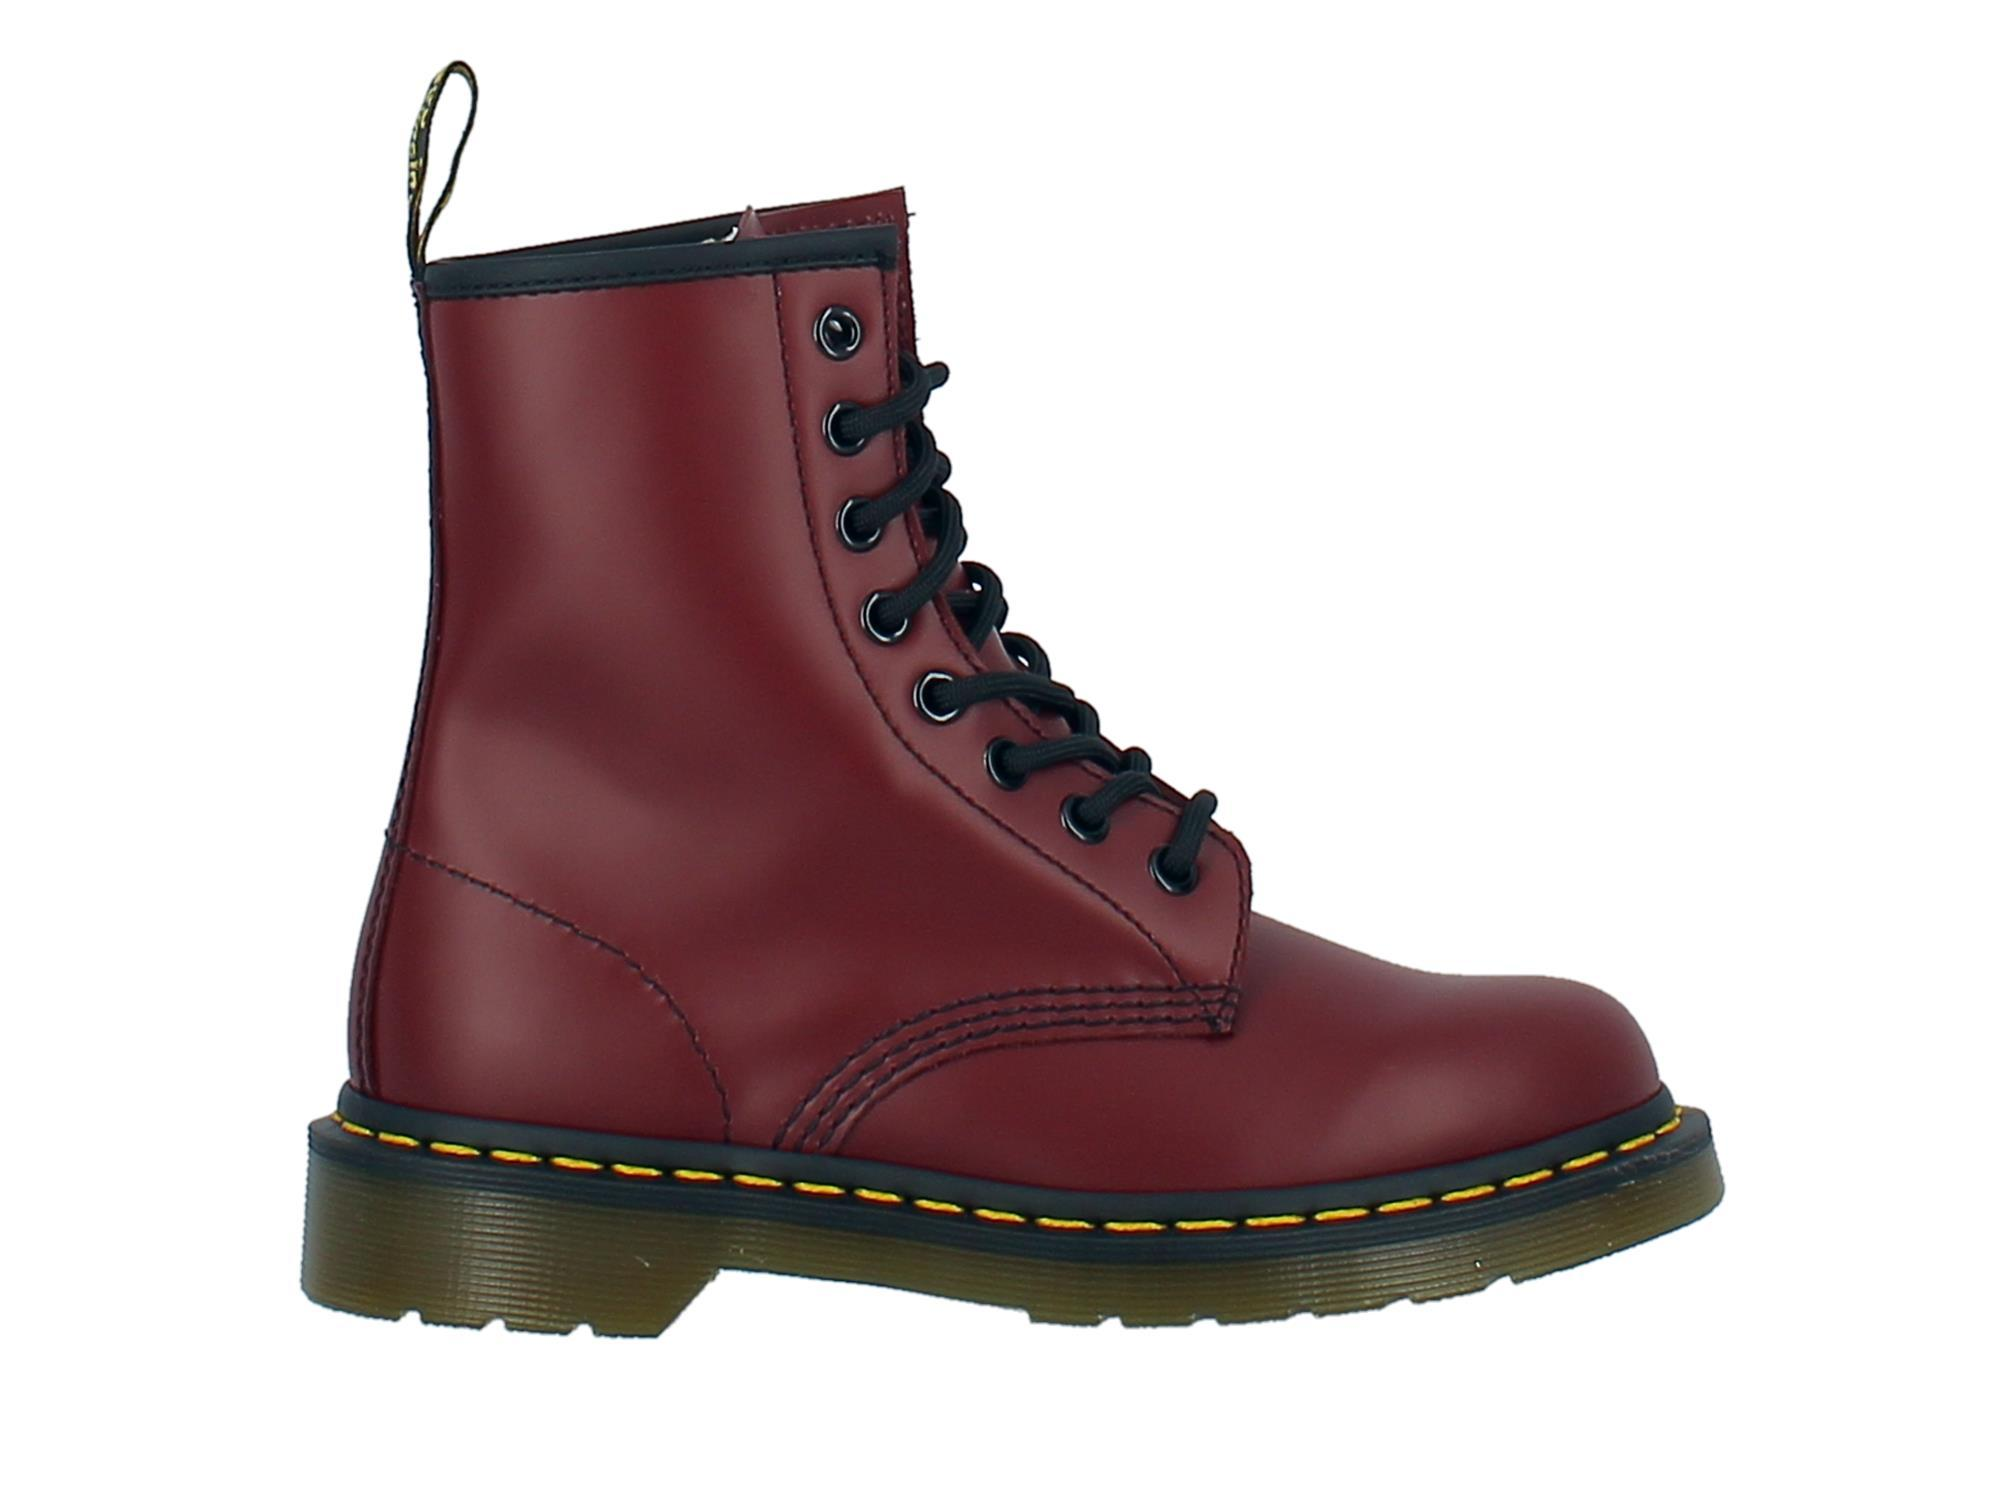 DR MARTENS SMOOTH CHERRY 1460